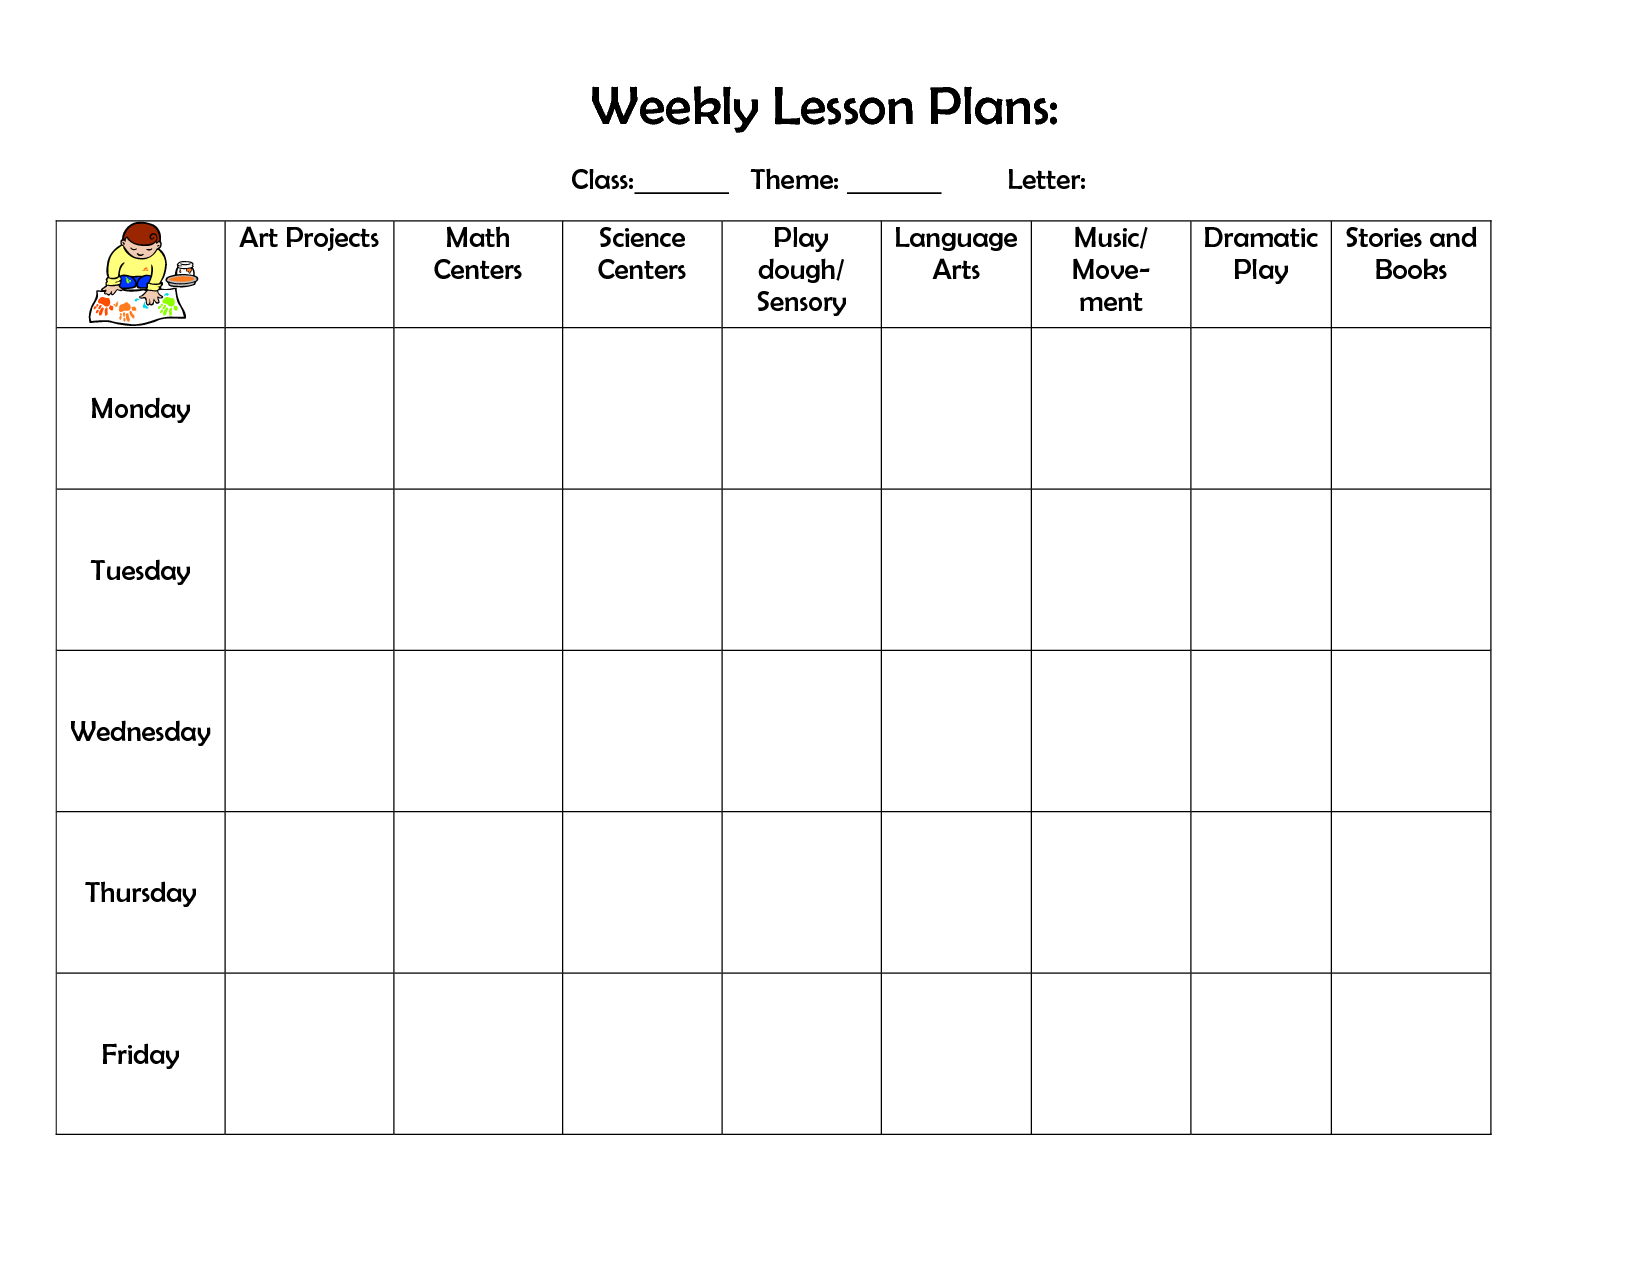 Free Weekly Lesson Plan Templates Weekly Lesson Plan Template 8 Free Word  Excel Pdf Format, Weekly Lesson Plan Template 8 Free Word Excel Pdf Format,  ...  Free Lesson Plan Format